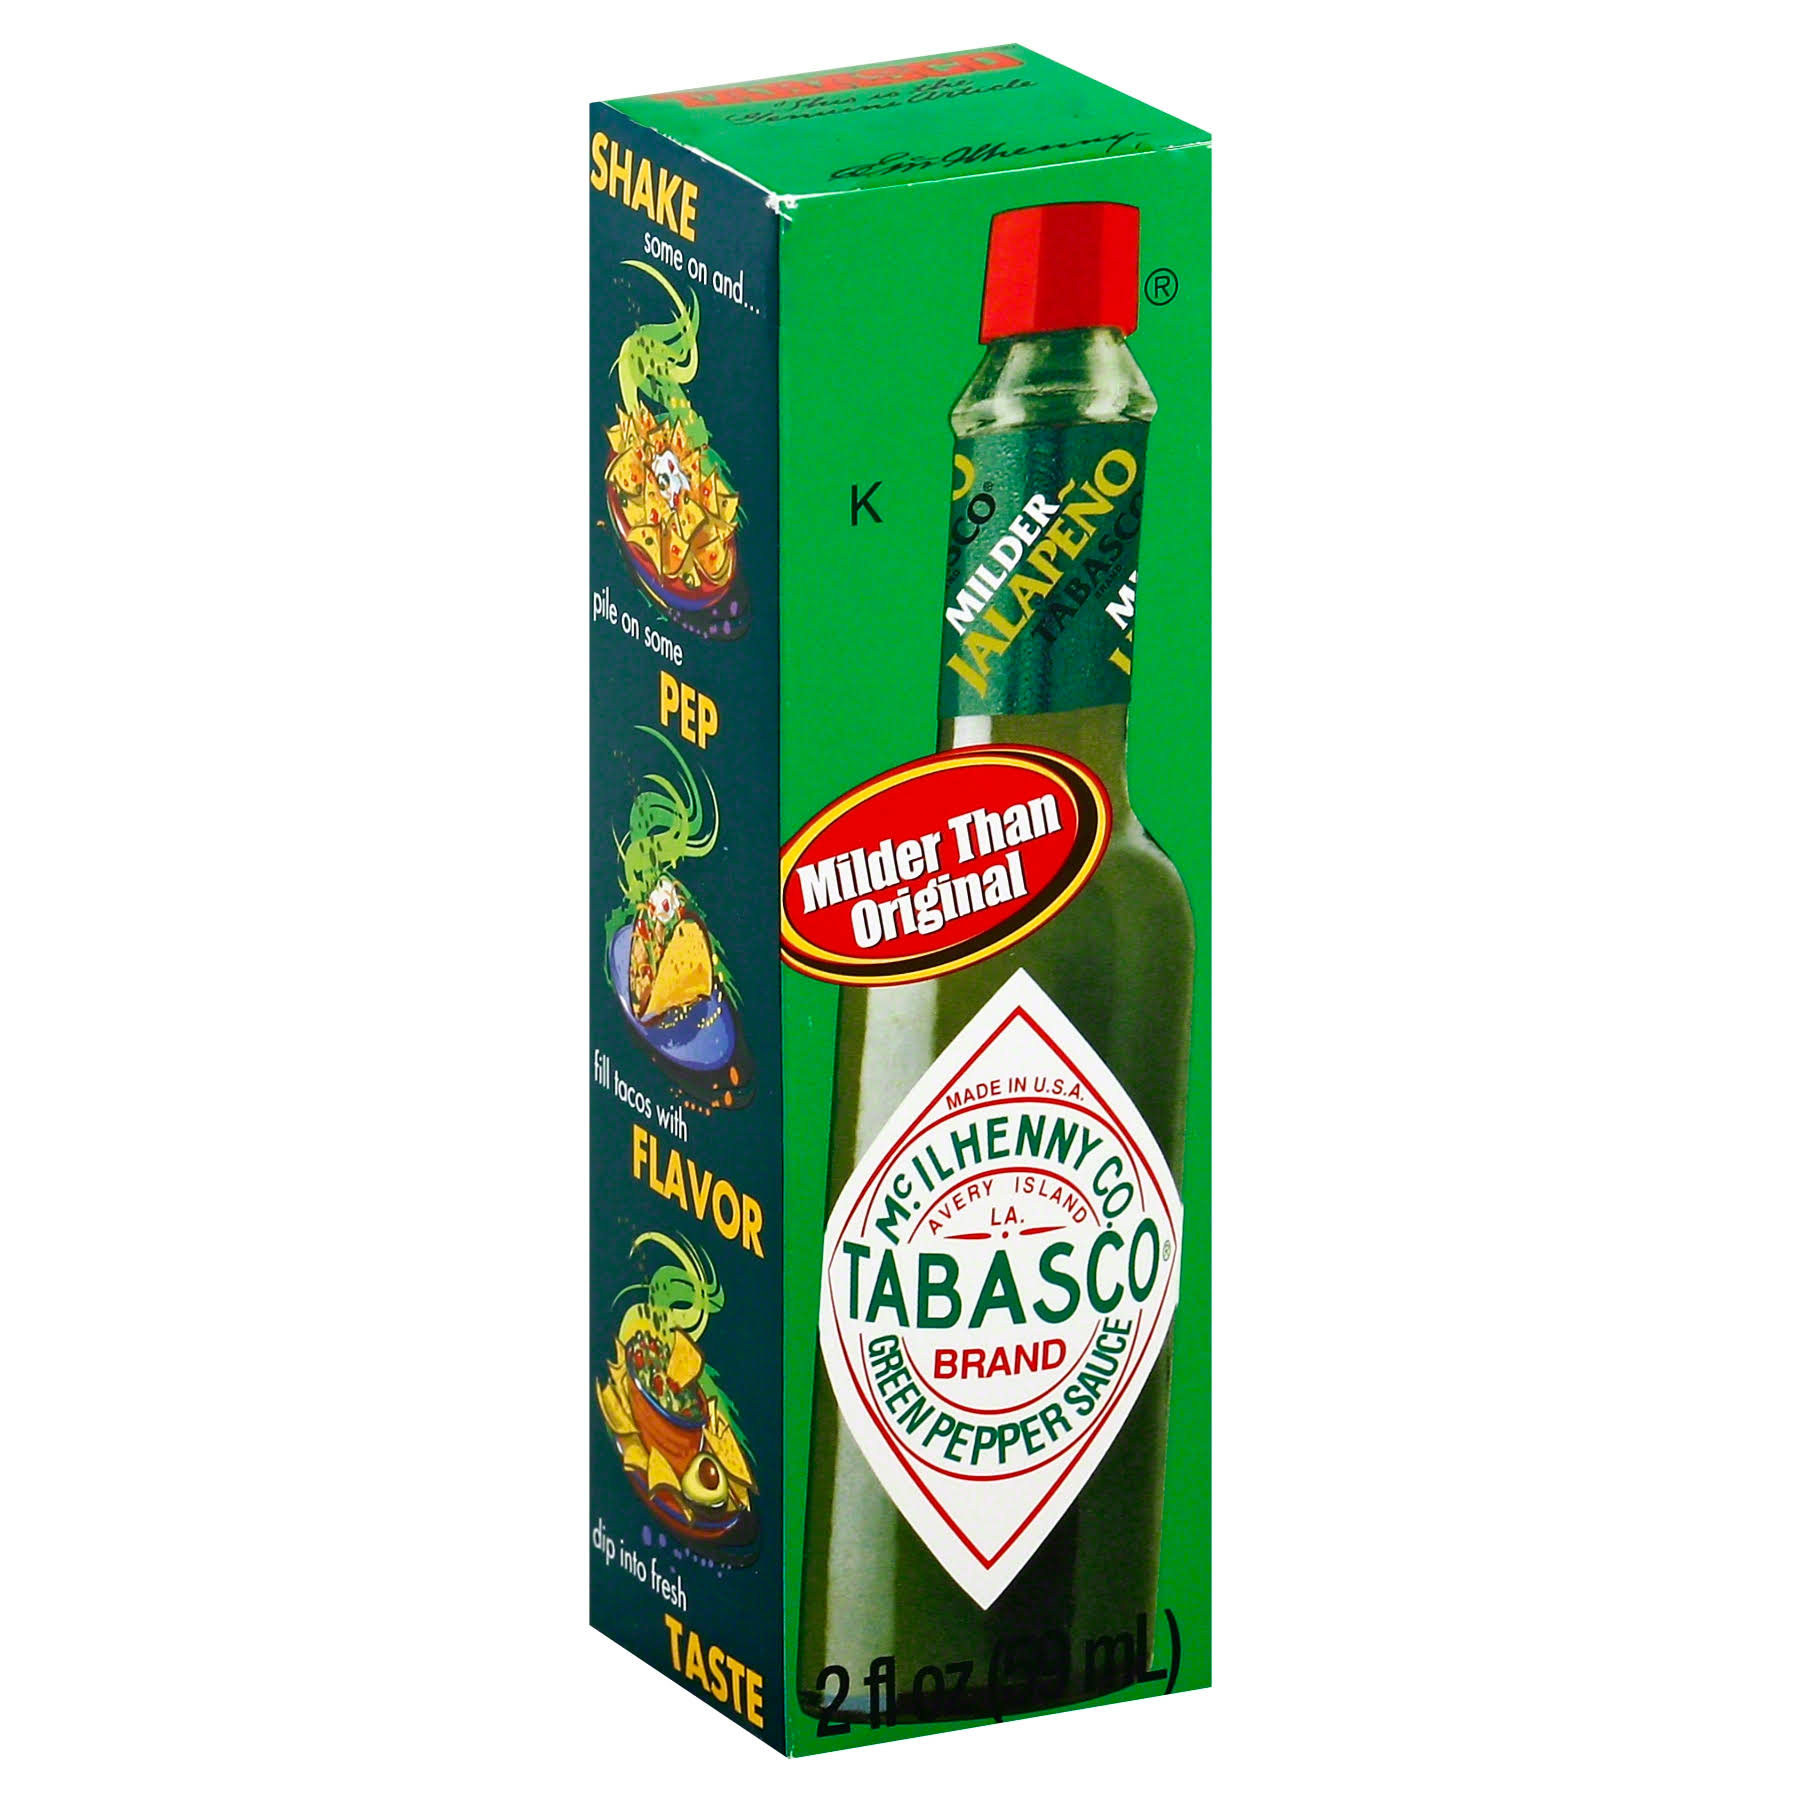 Tabasco Brand Green Jalapeno Pepper Sauce